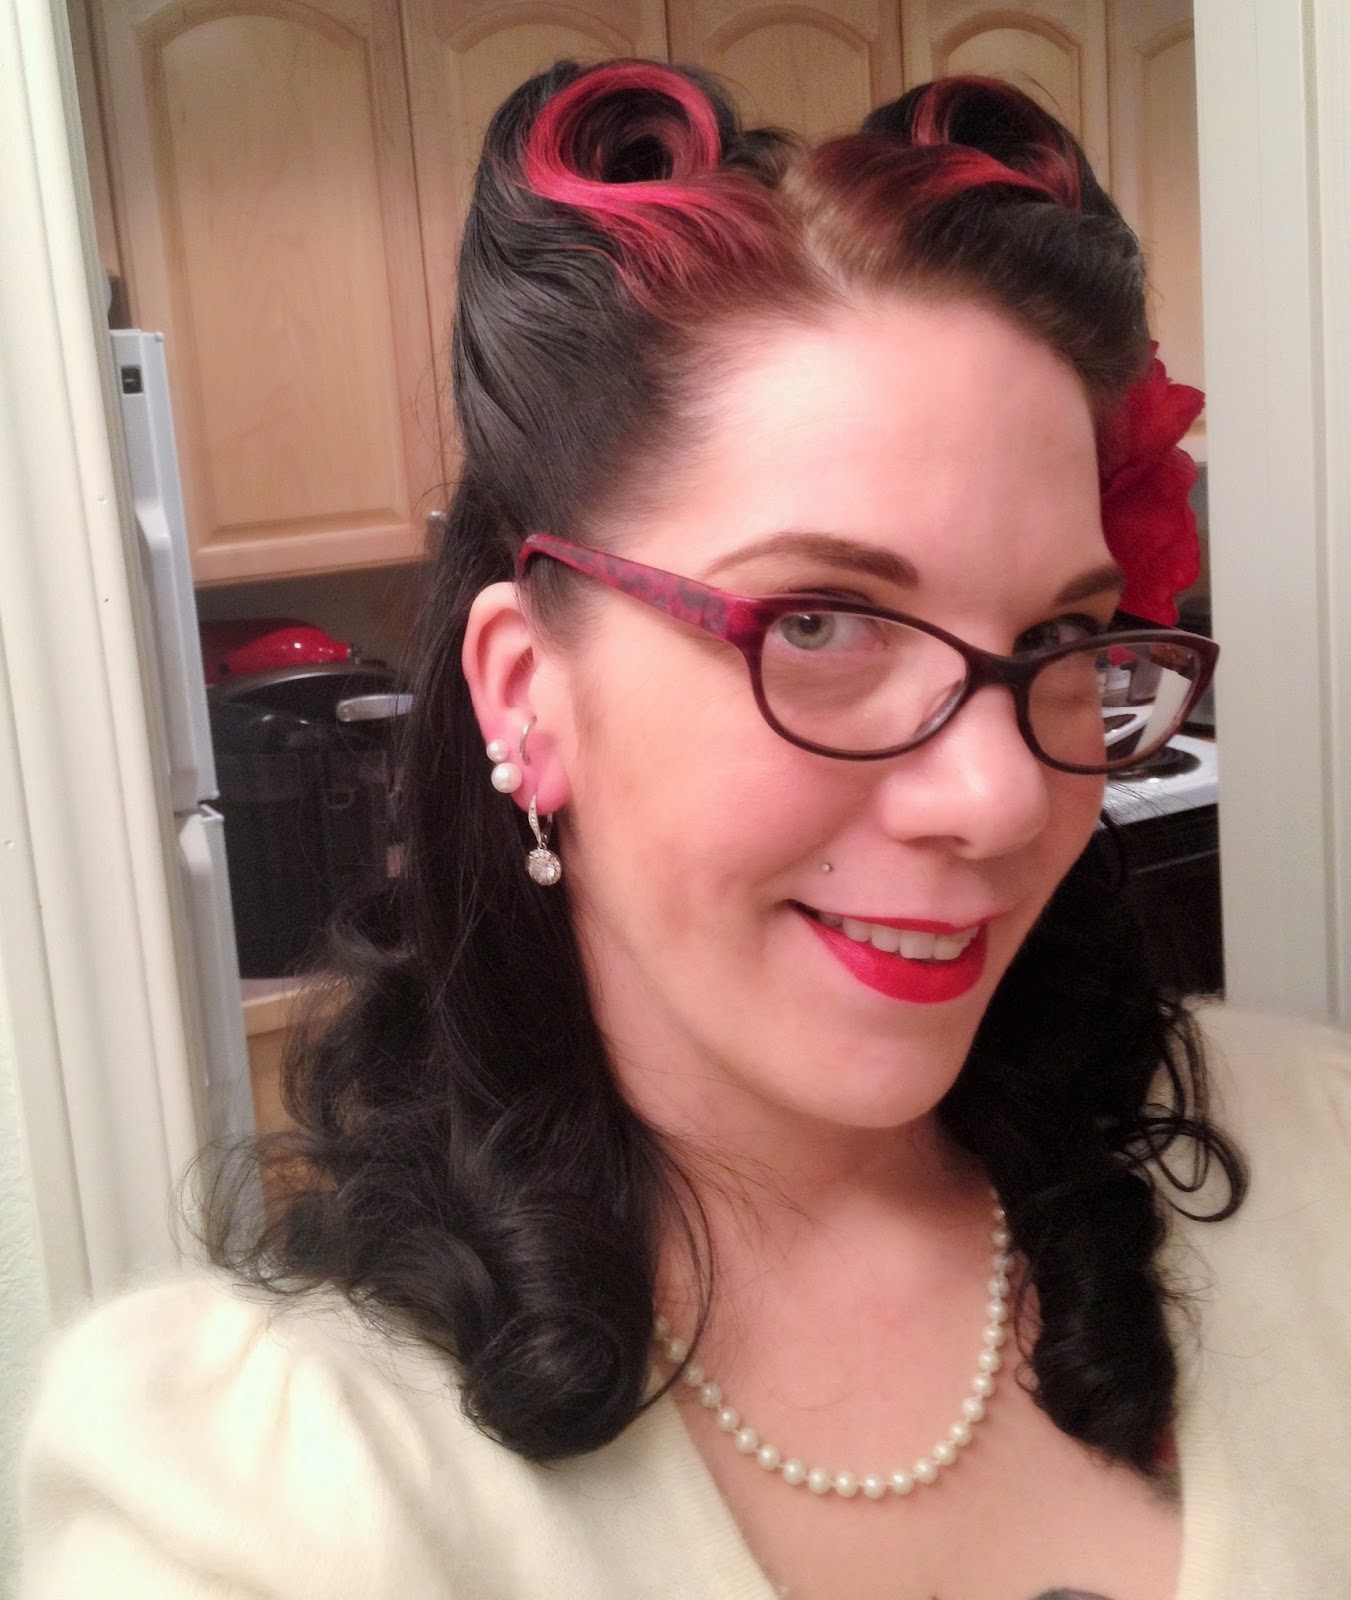 Victory rolls - She Knits in Pearls